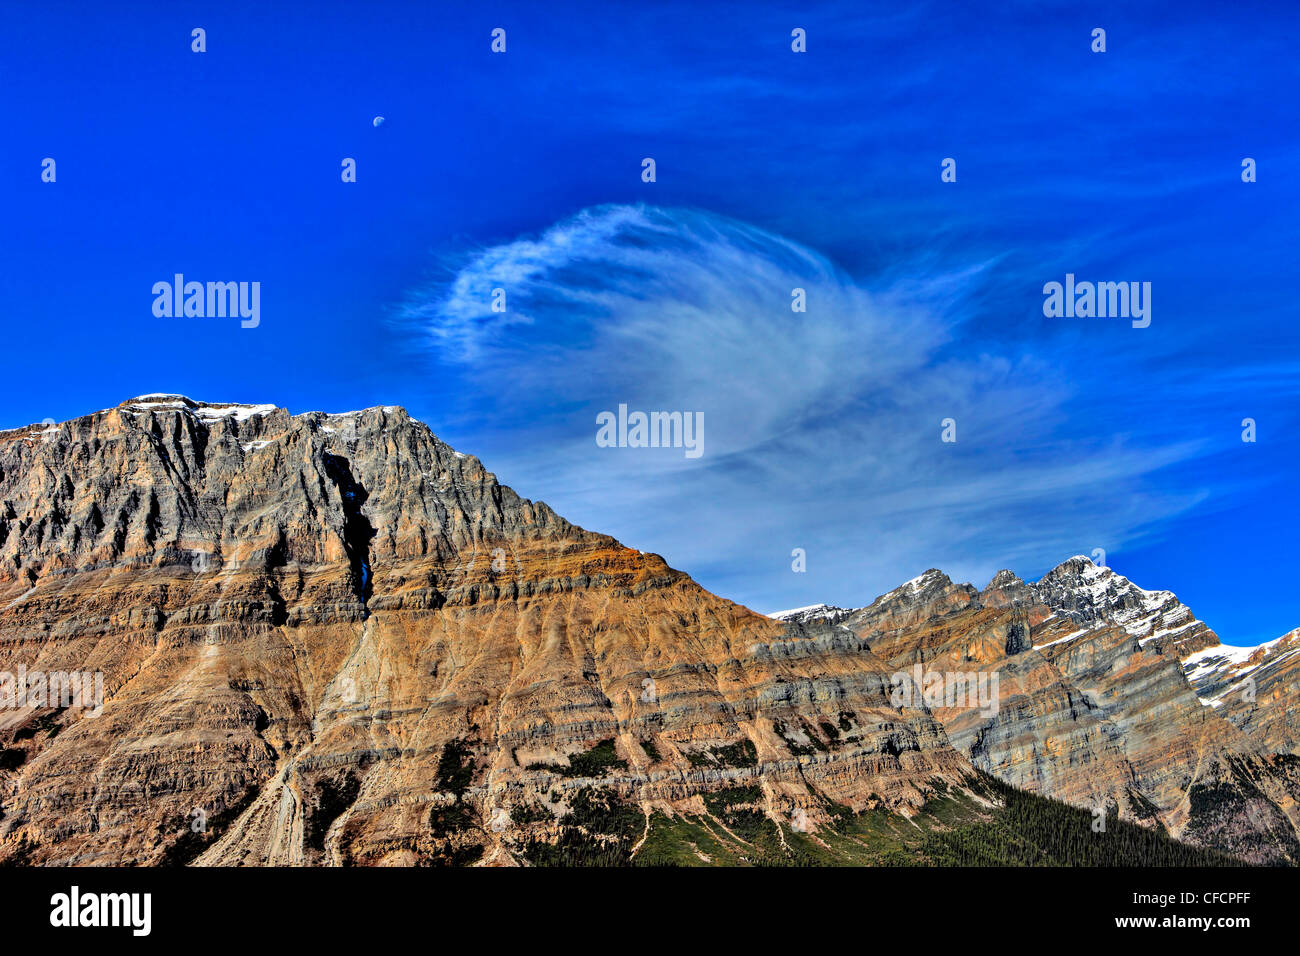 Cloud over Patterson Mountain, Banff National Park, Alberta, Canada - Stock Image